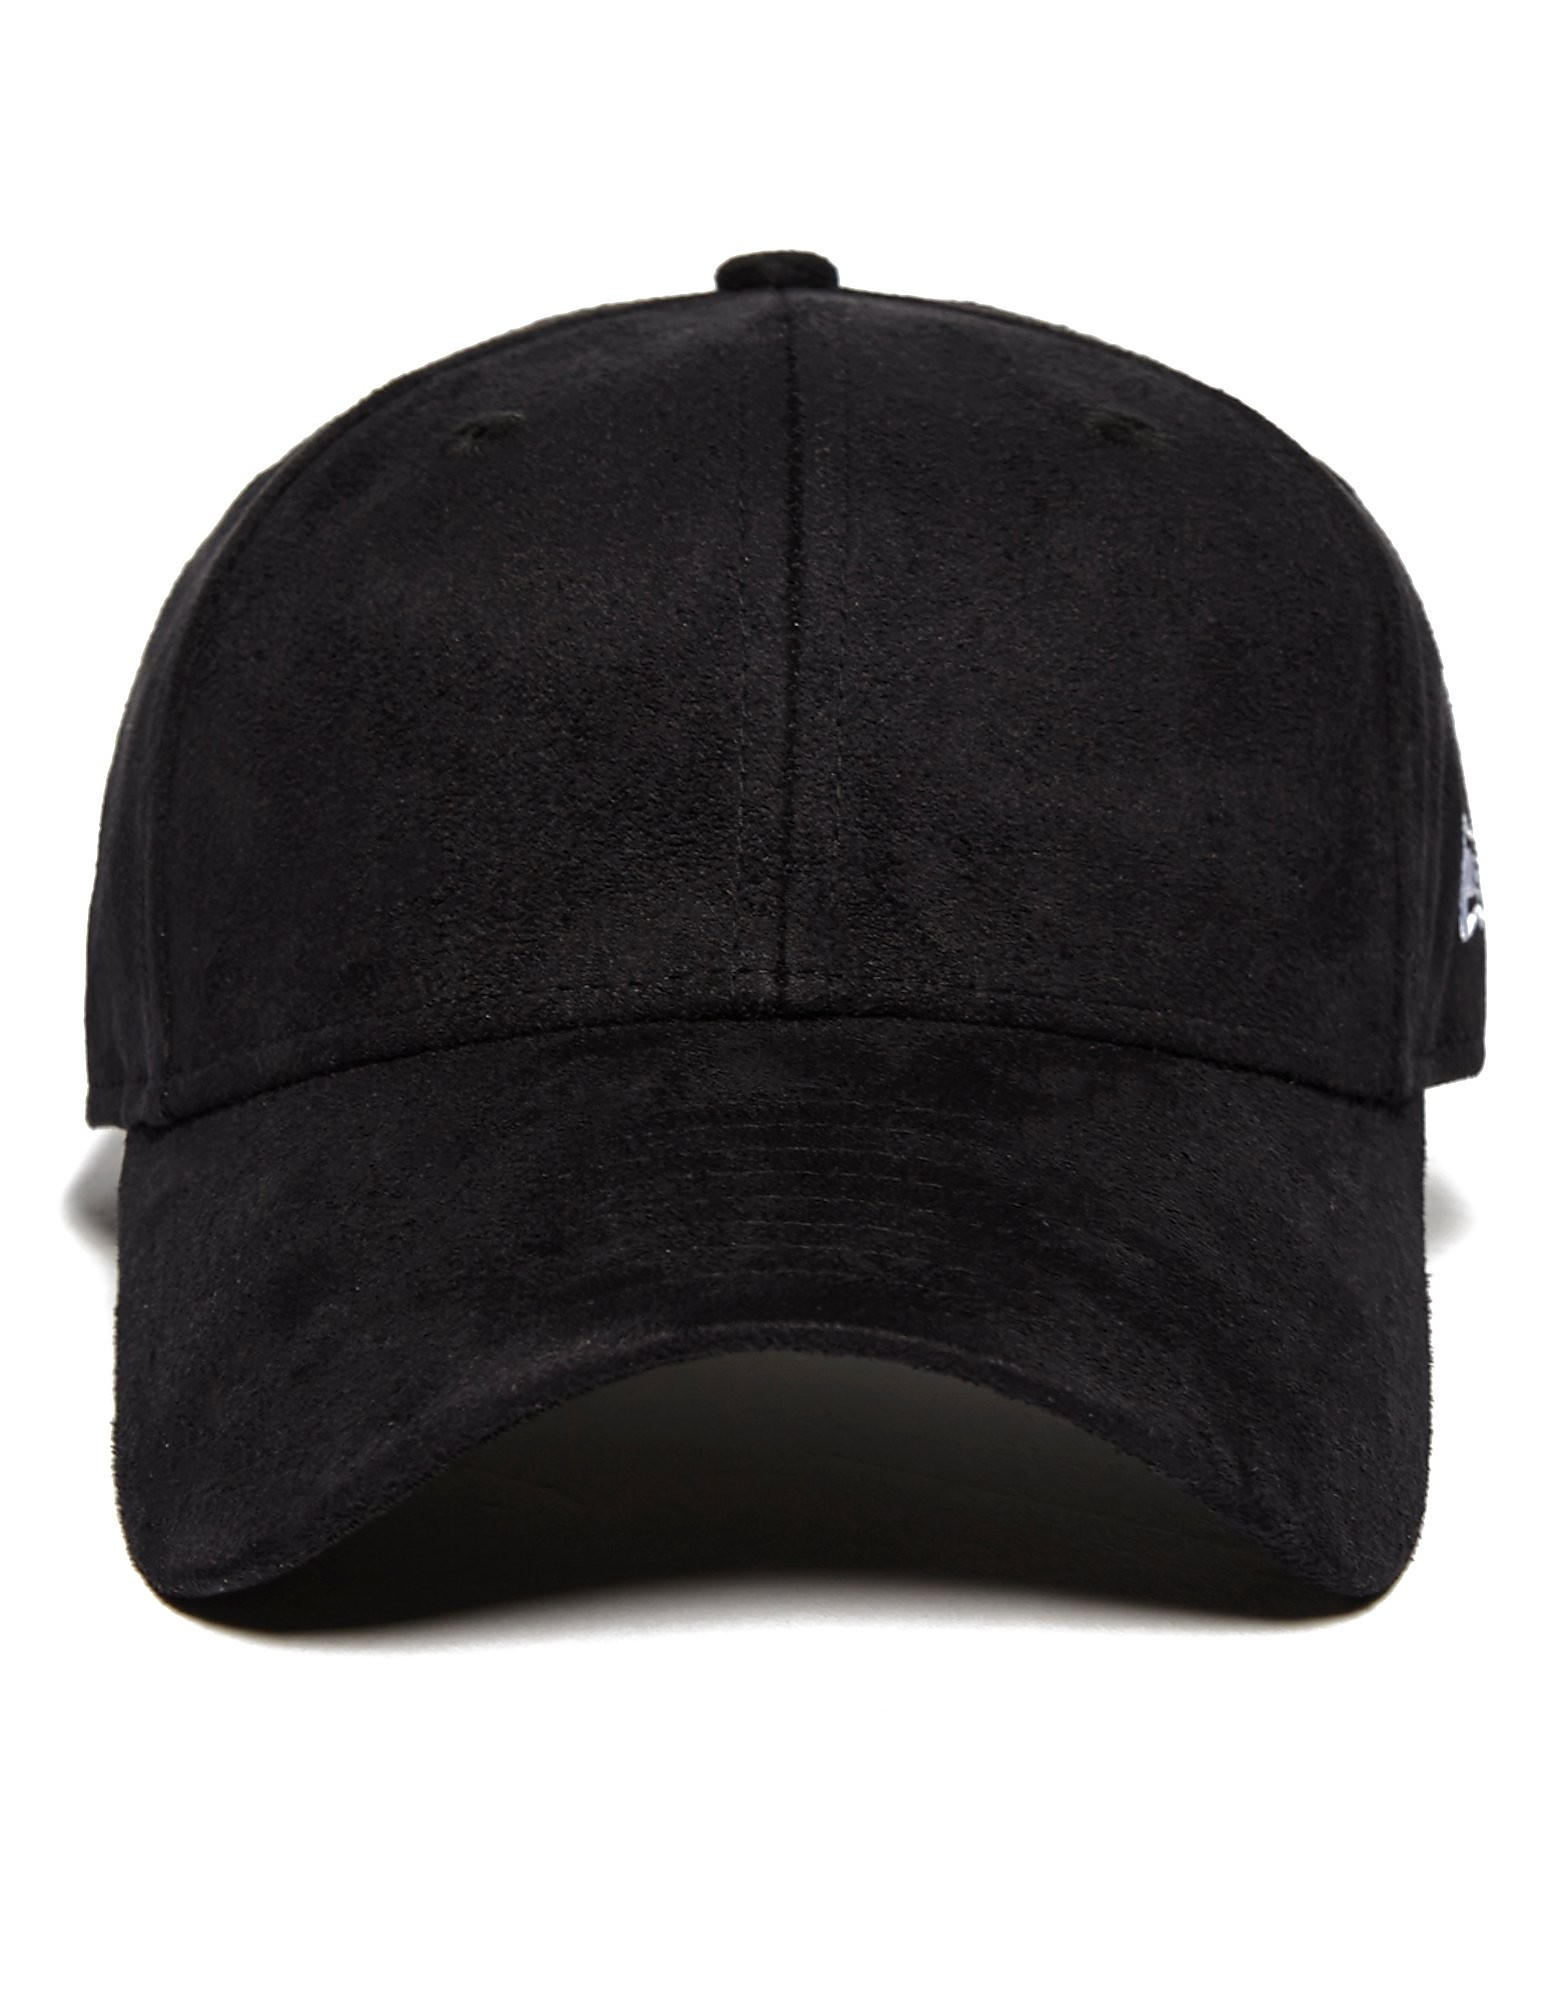 New Era 9FORTY-Wildlederkappe